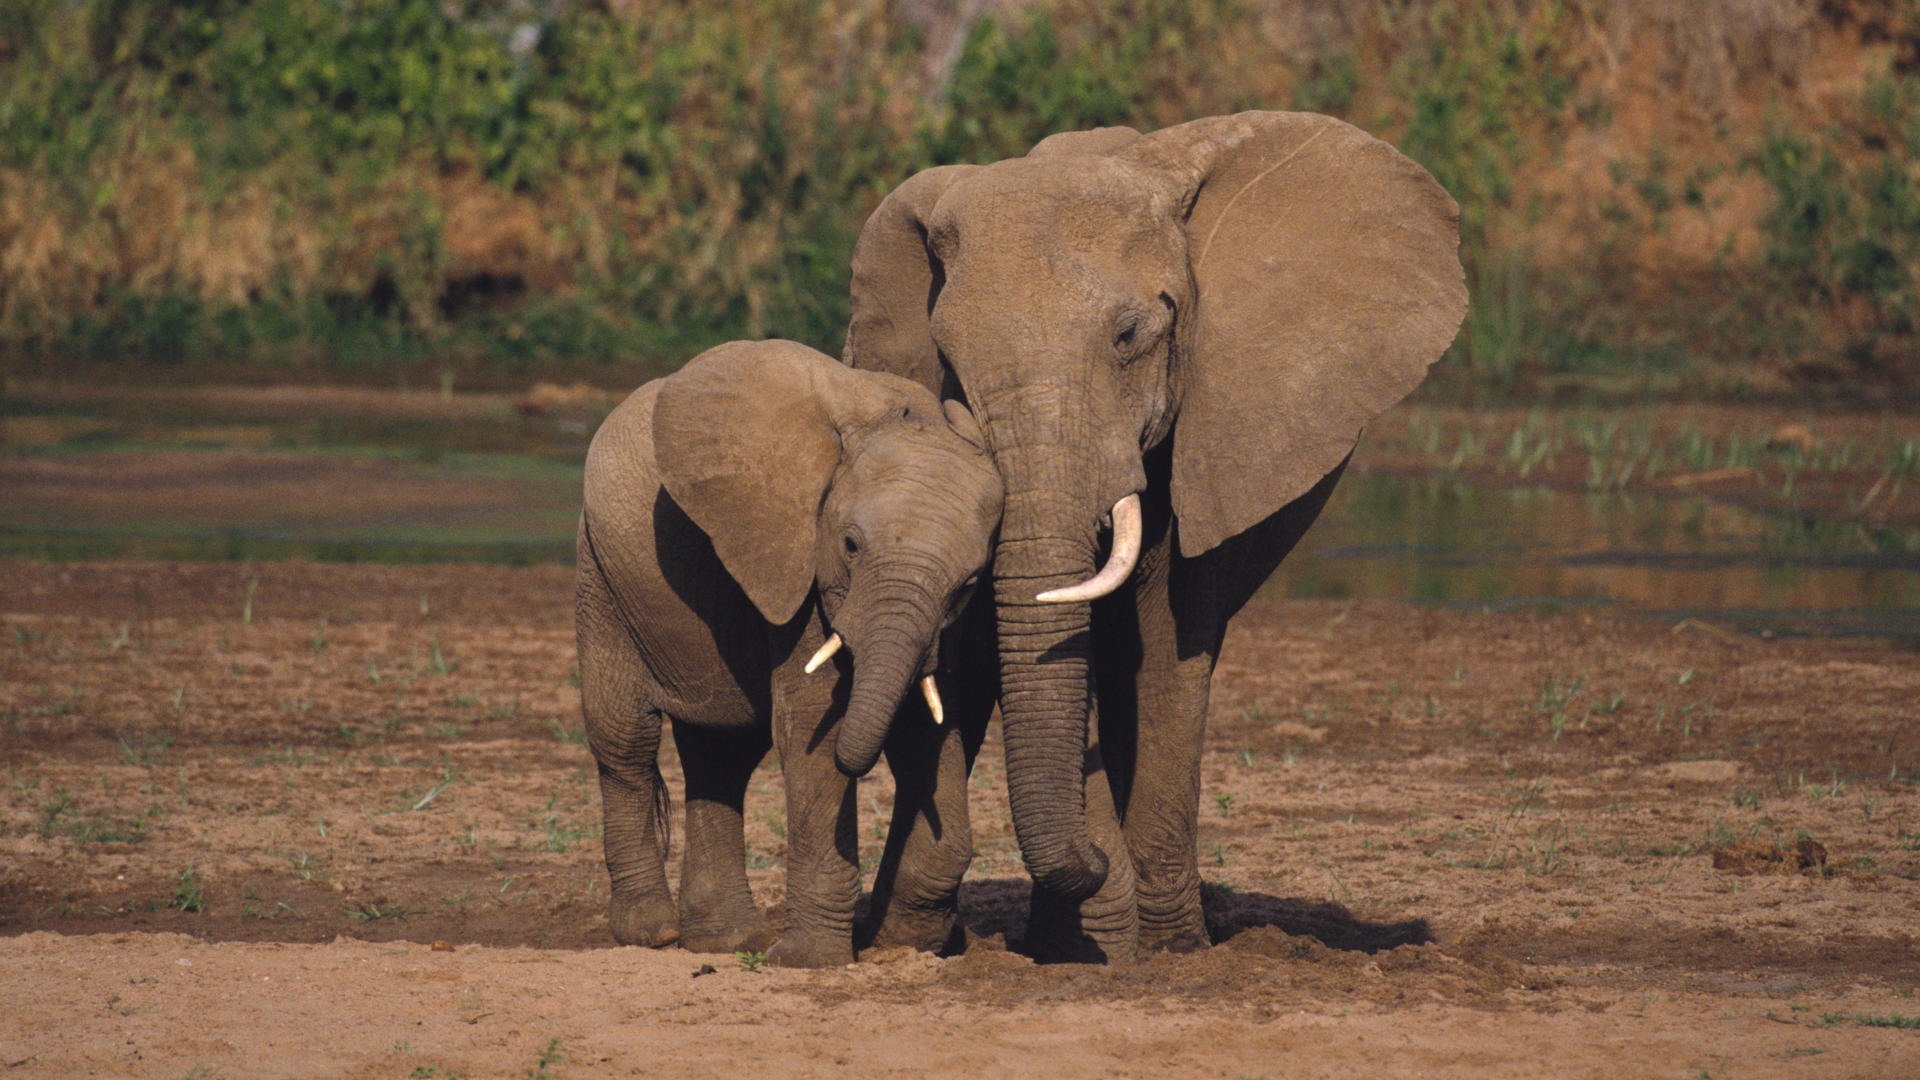 animals_hdwallpaper_african-elephants_65627.jpg